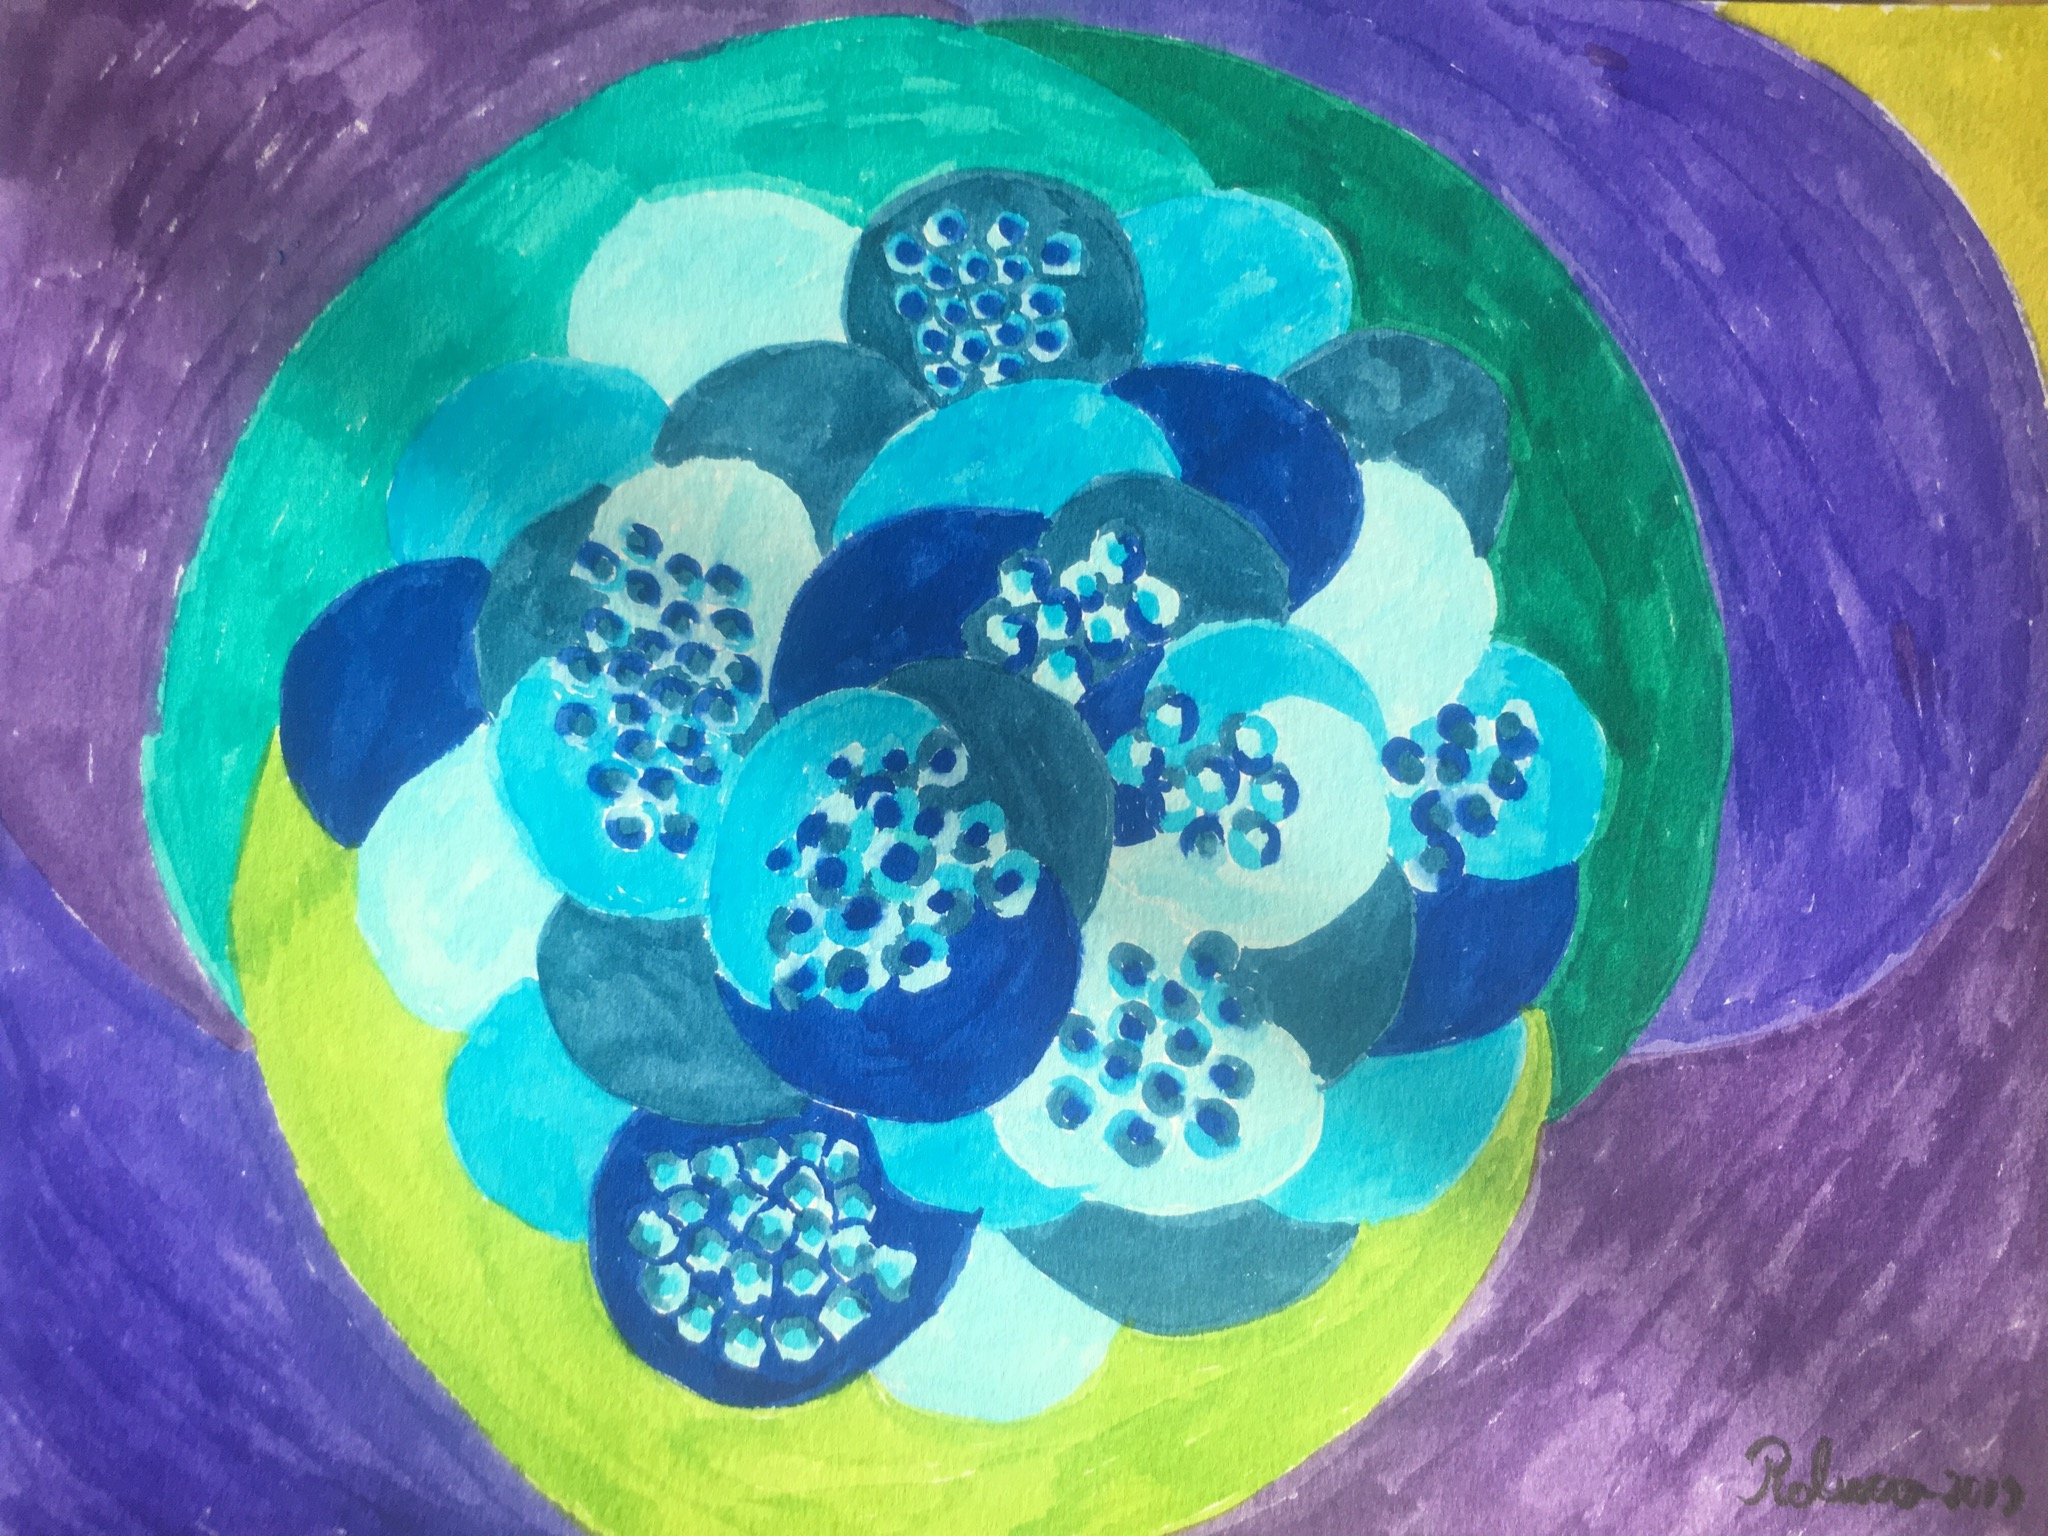 Chaotic cell division  artwork by Raluca Tiganila - art listed for sale on Artplode